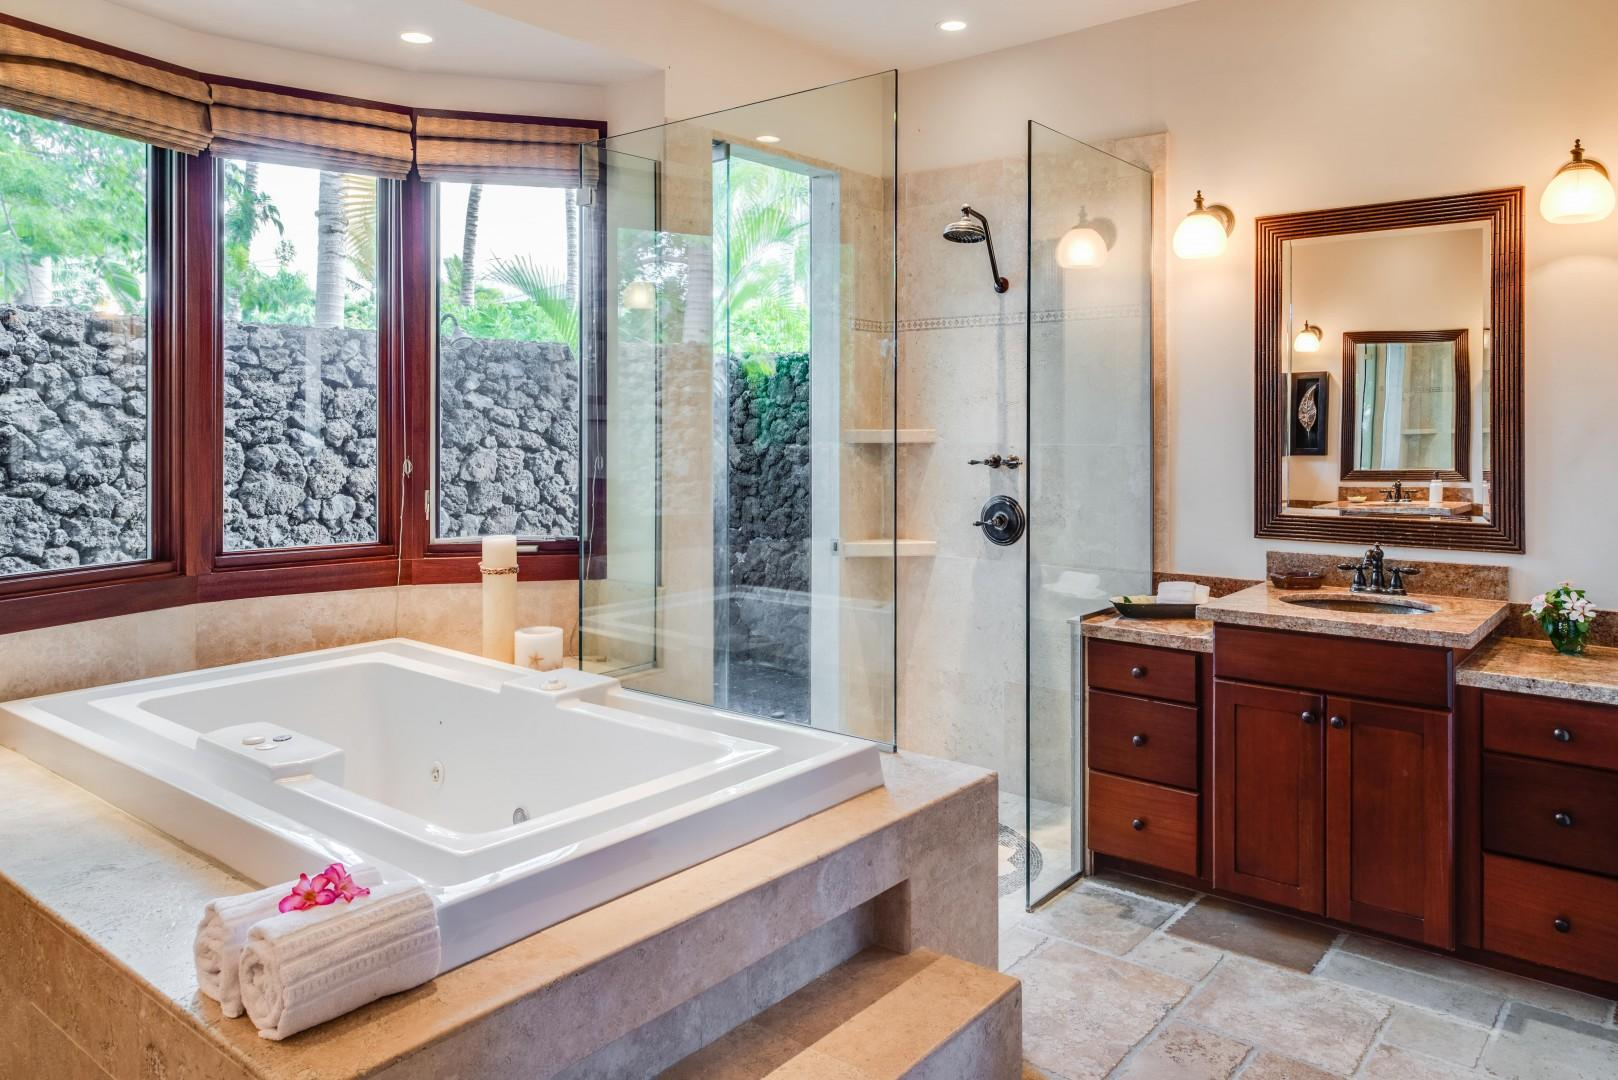 Master Bath w/ Deep Jacuzzi Tub & Glass Walk-in Shower